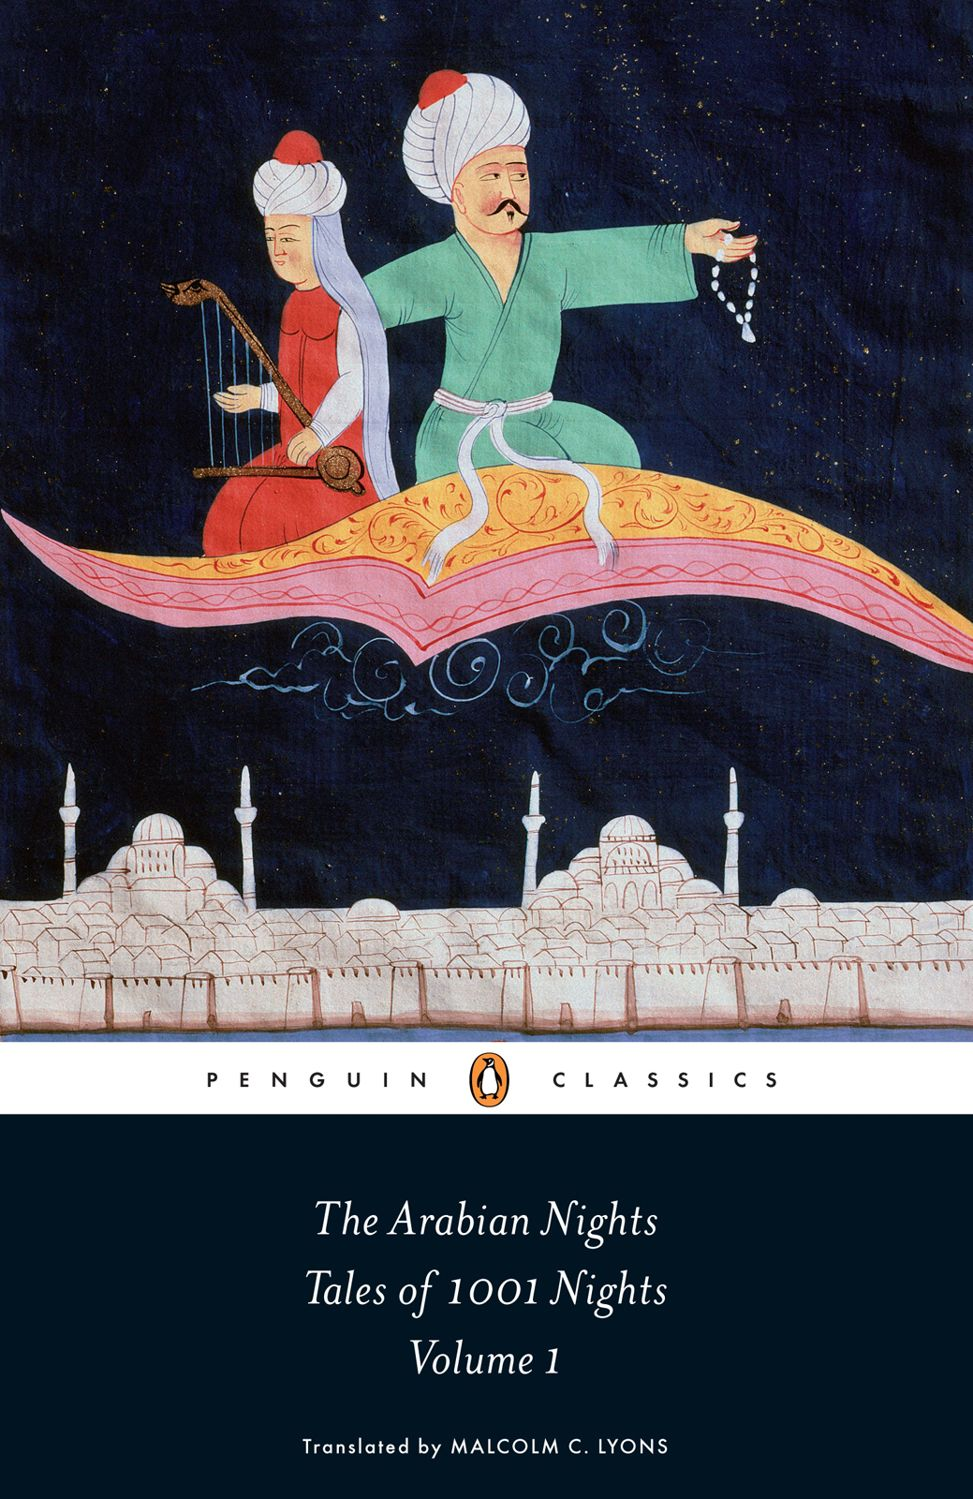 The cover of Penguin Classic's edition of 1,001 Nights